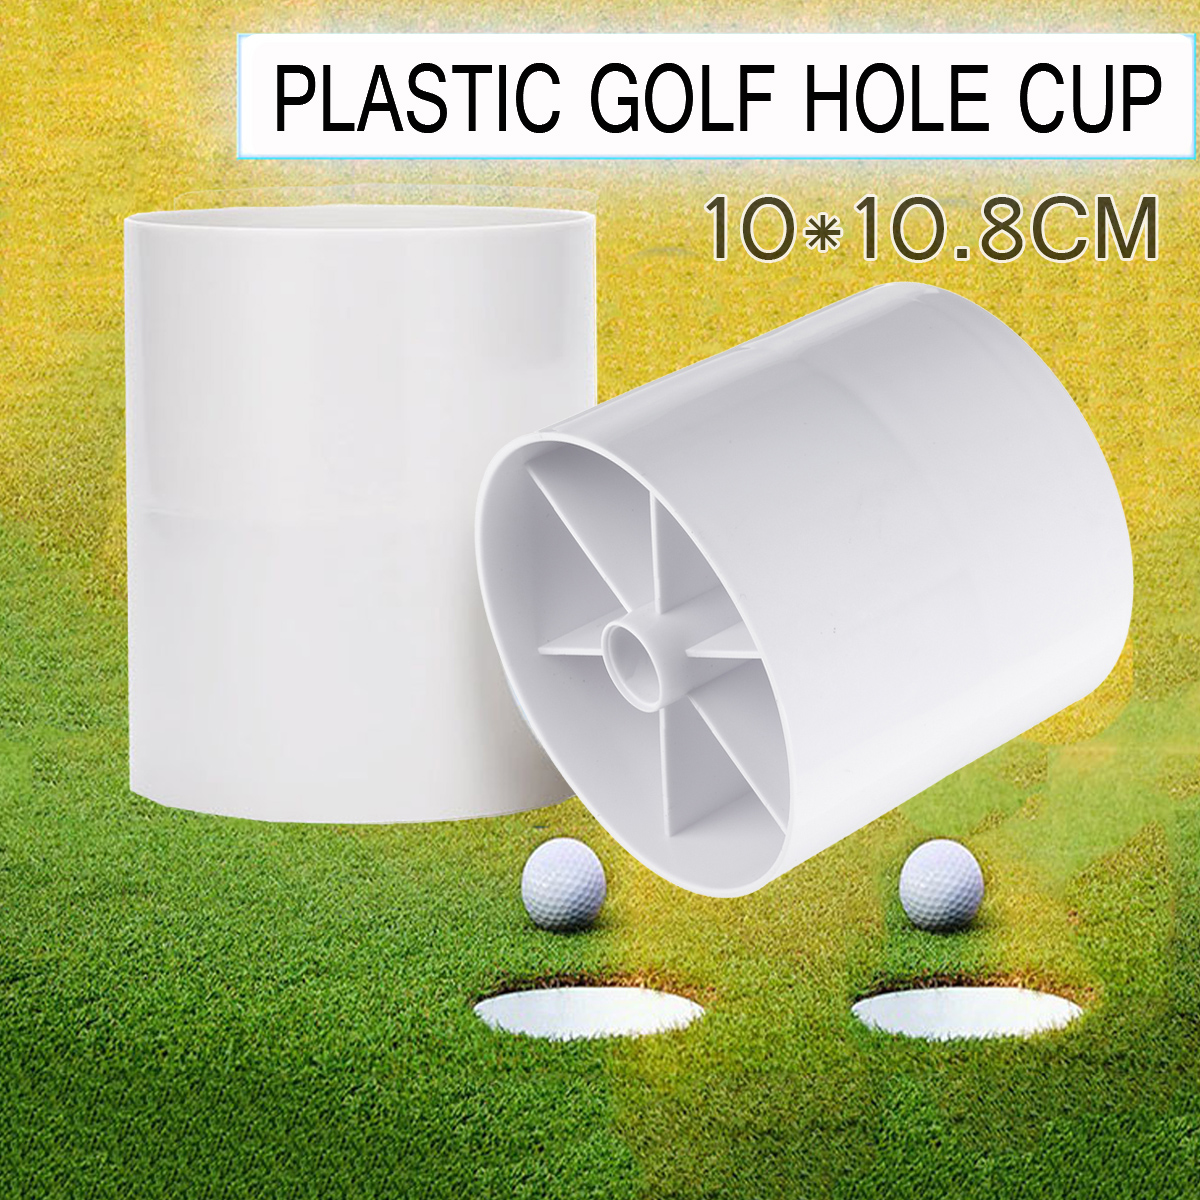 New Golf Product For 2006